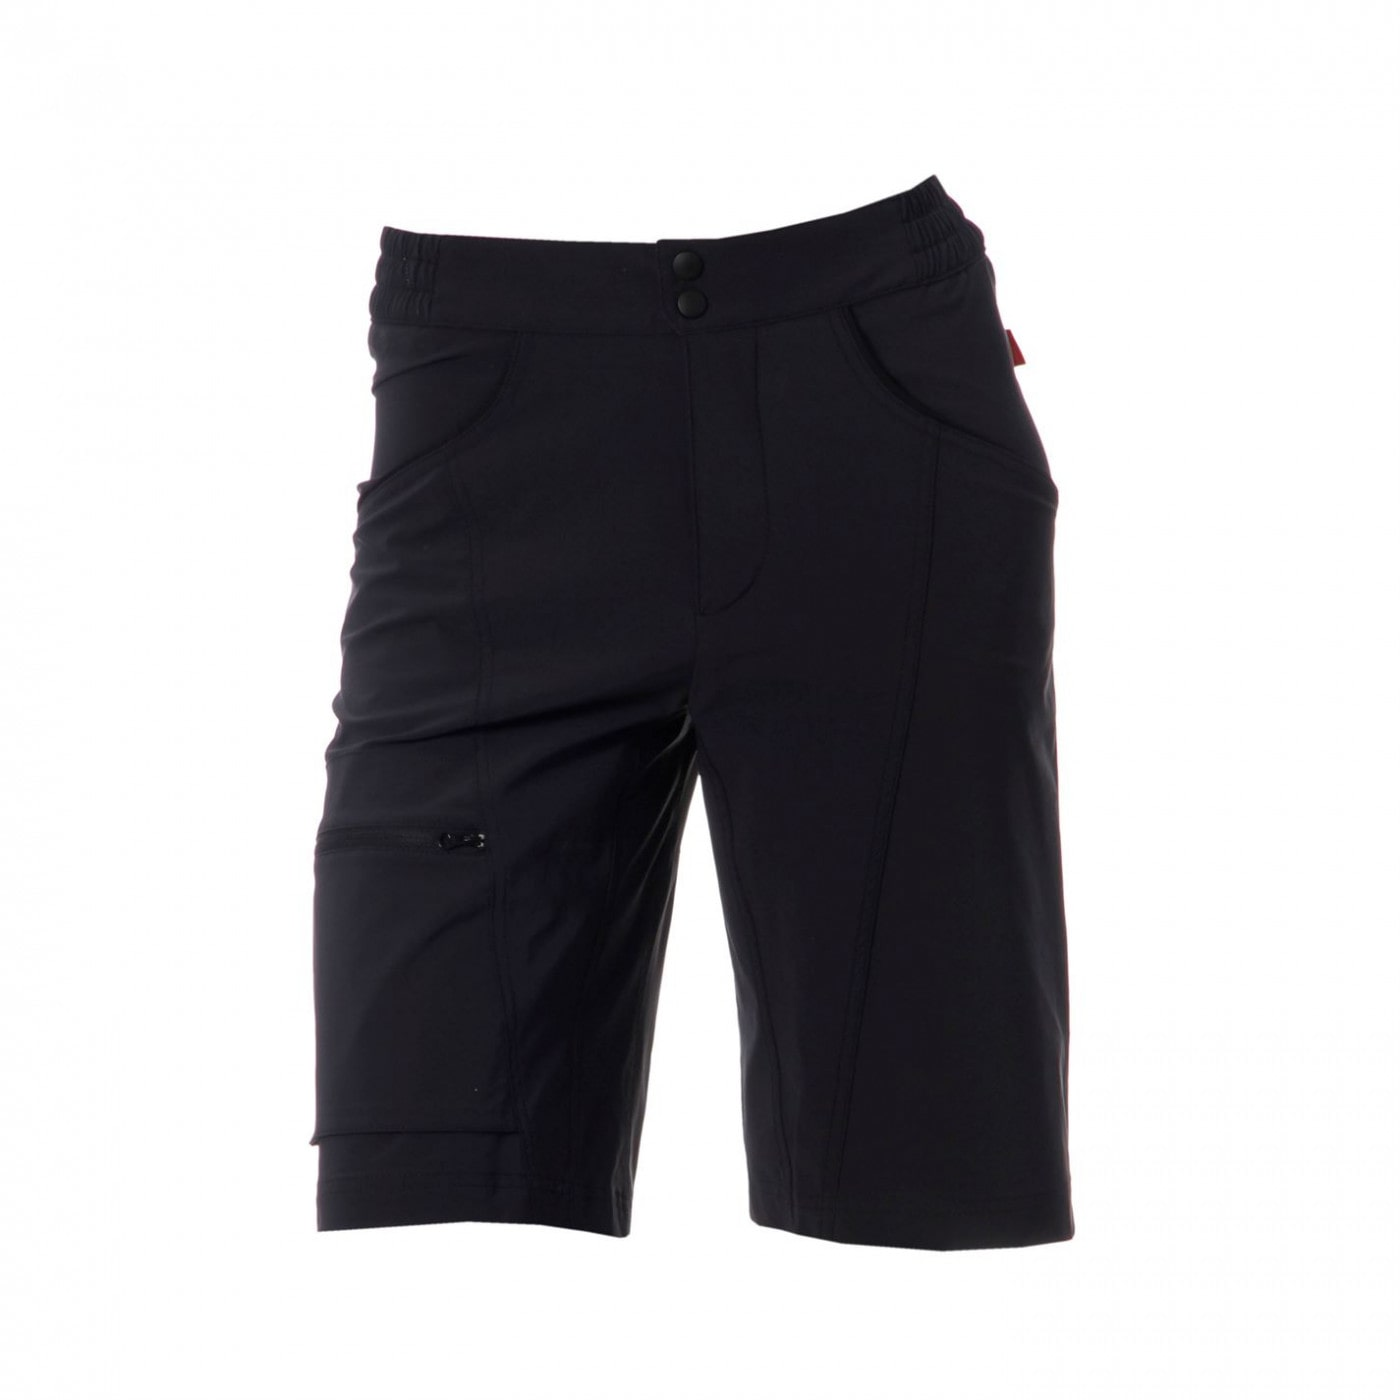 Löffler Bike Shorts Mens